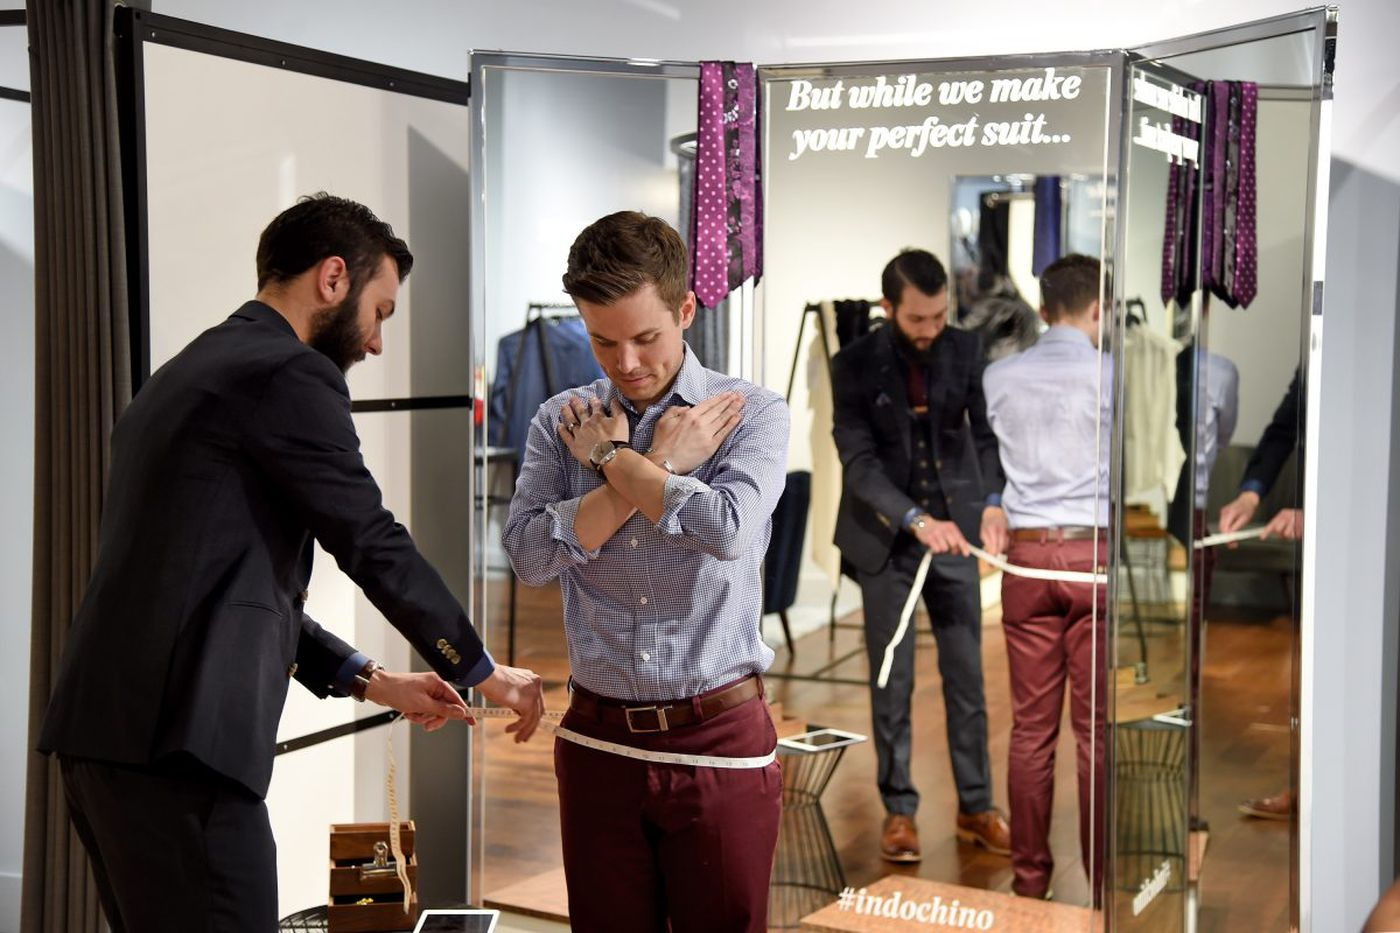 Men's suit maven Indochino shows how millennials like to buy suits